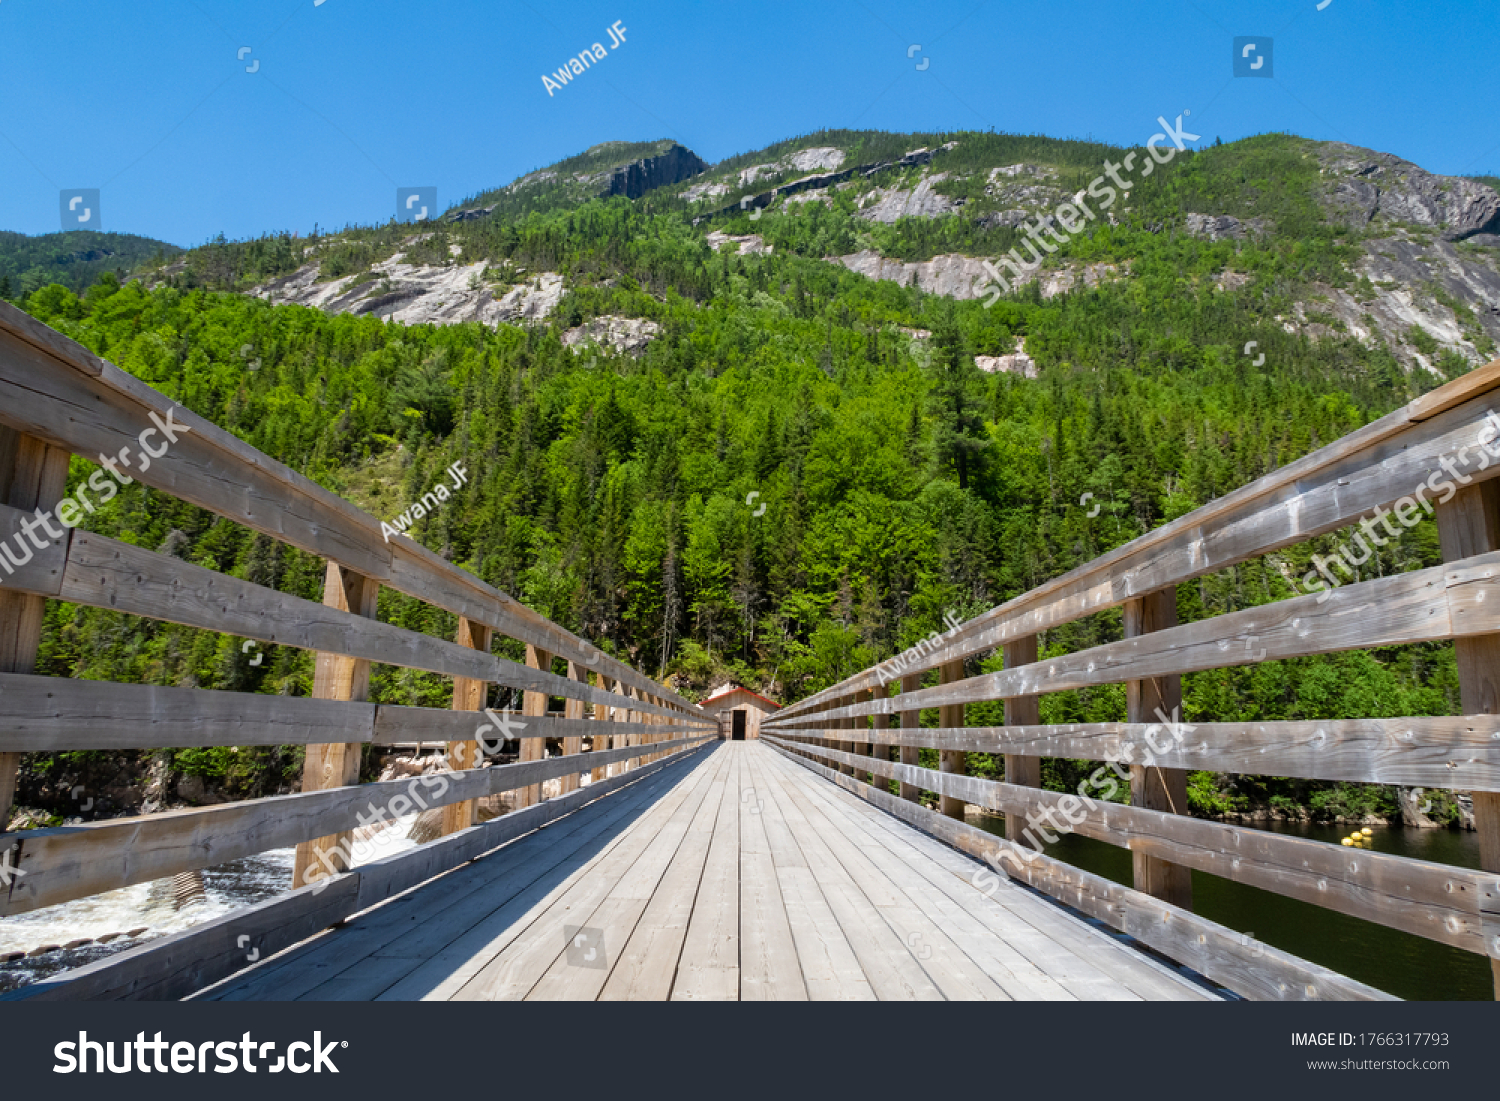 stock-photo-view-of-the-barrage-des-rabl